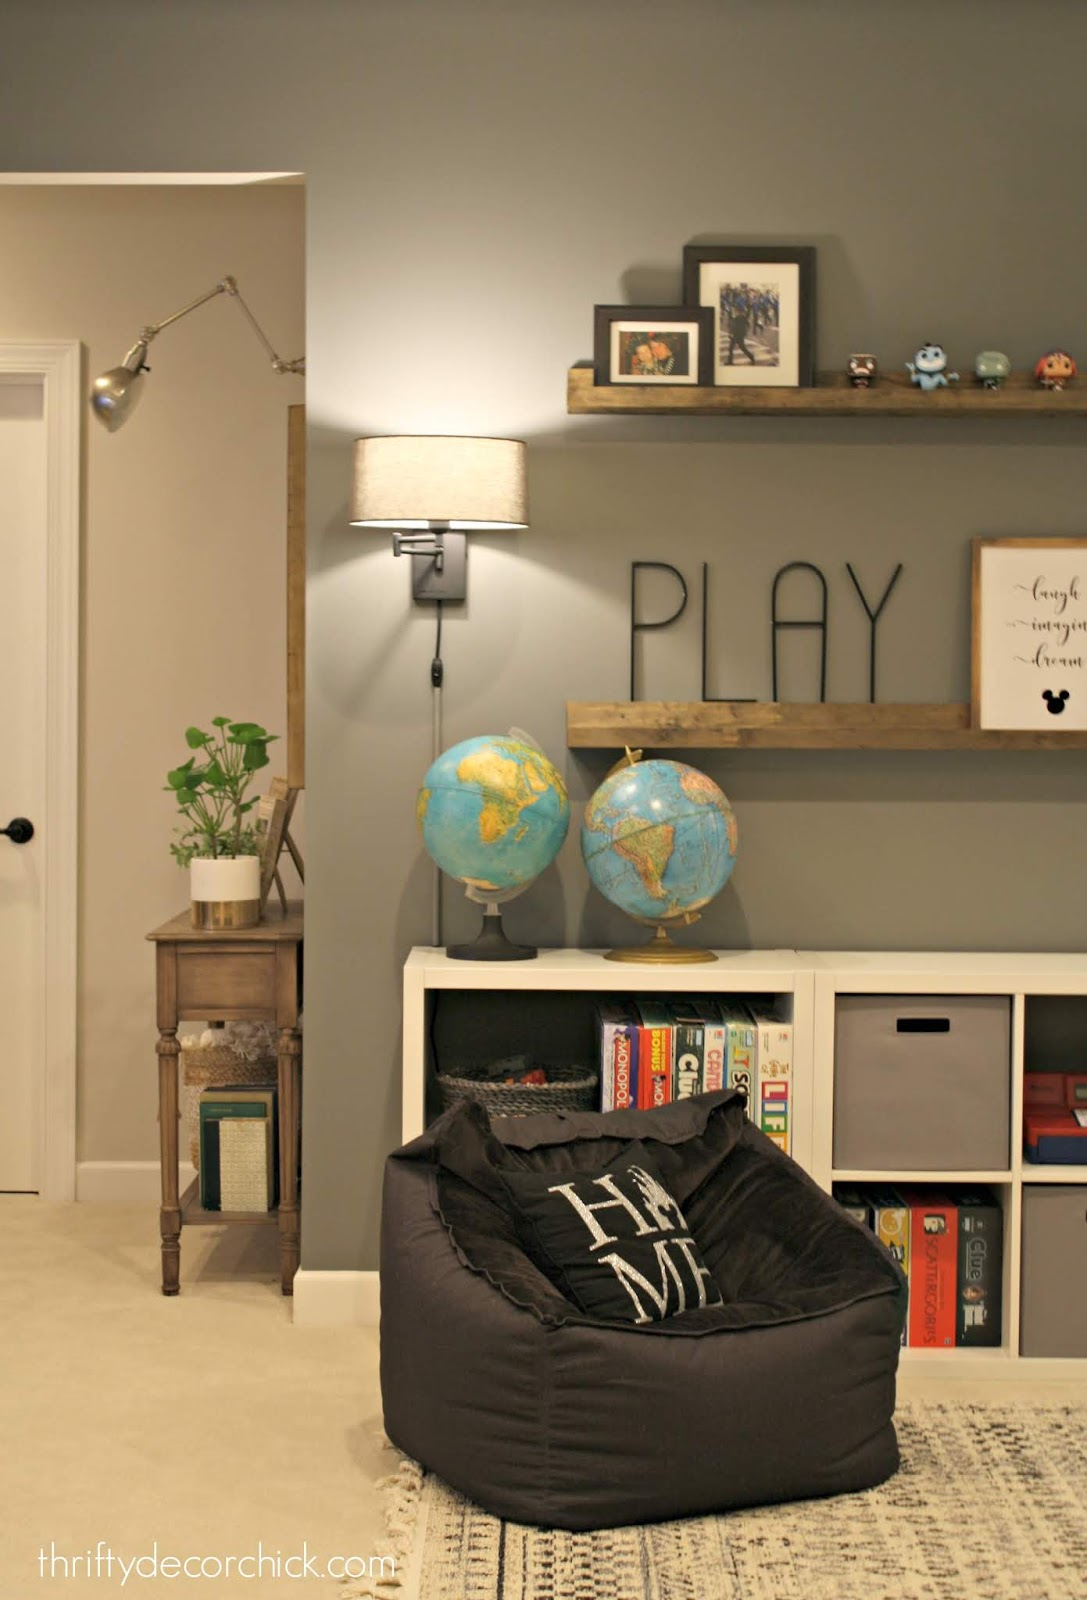 DIY picture ledge shelves for displaying decor